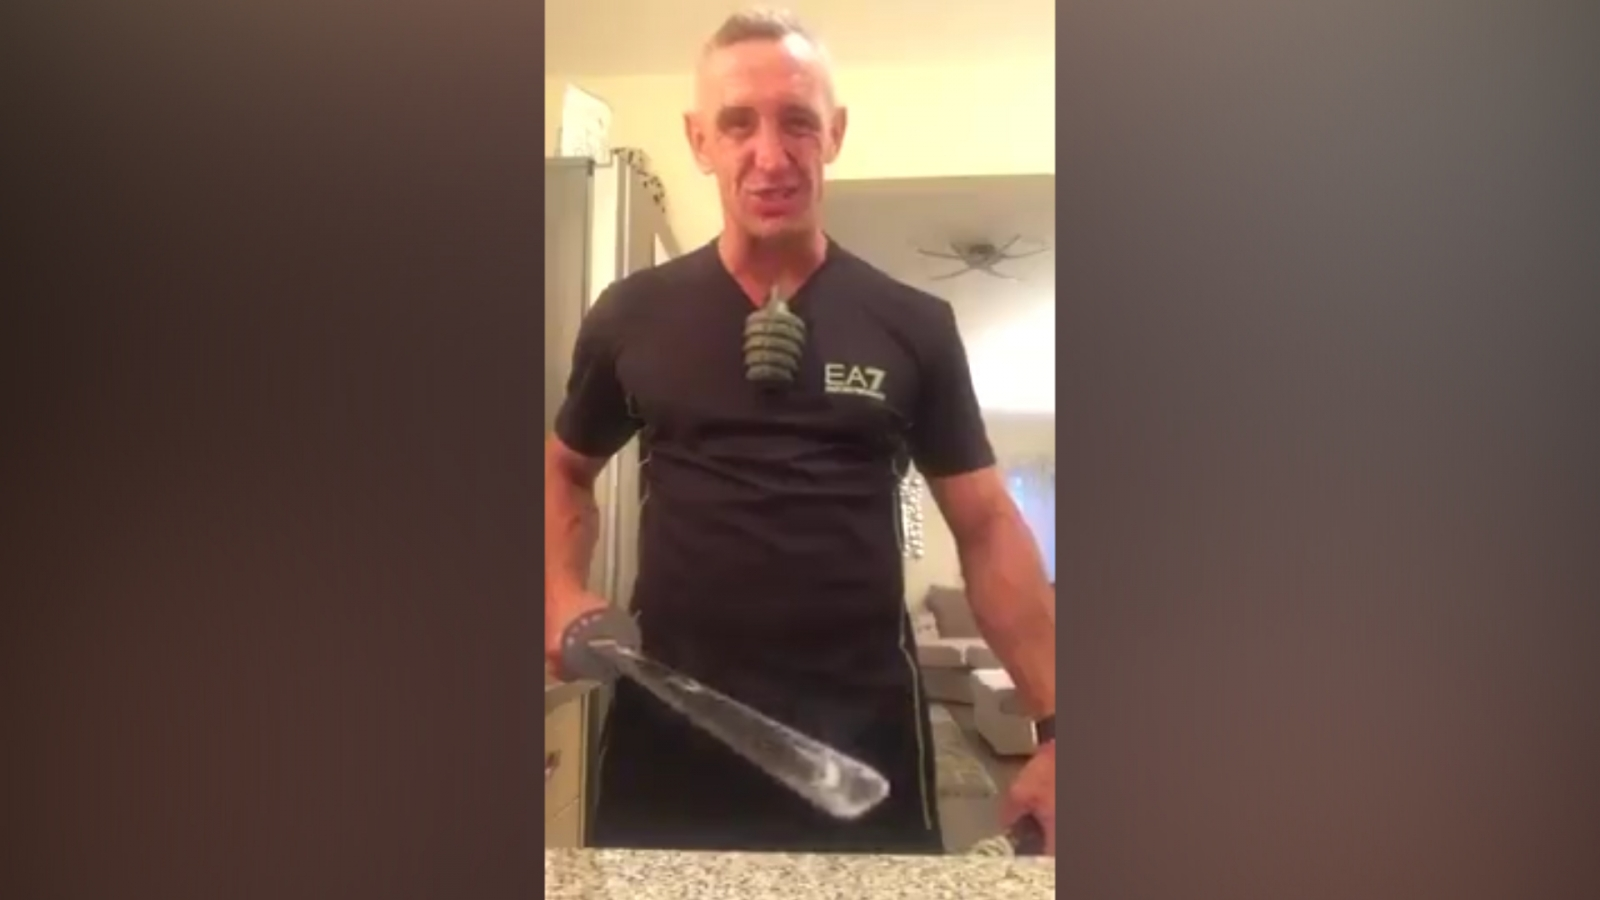 white-brit-armed-in-racist-rant-goes-viral-but-apologizes-calling-video-joke